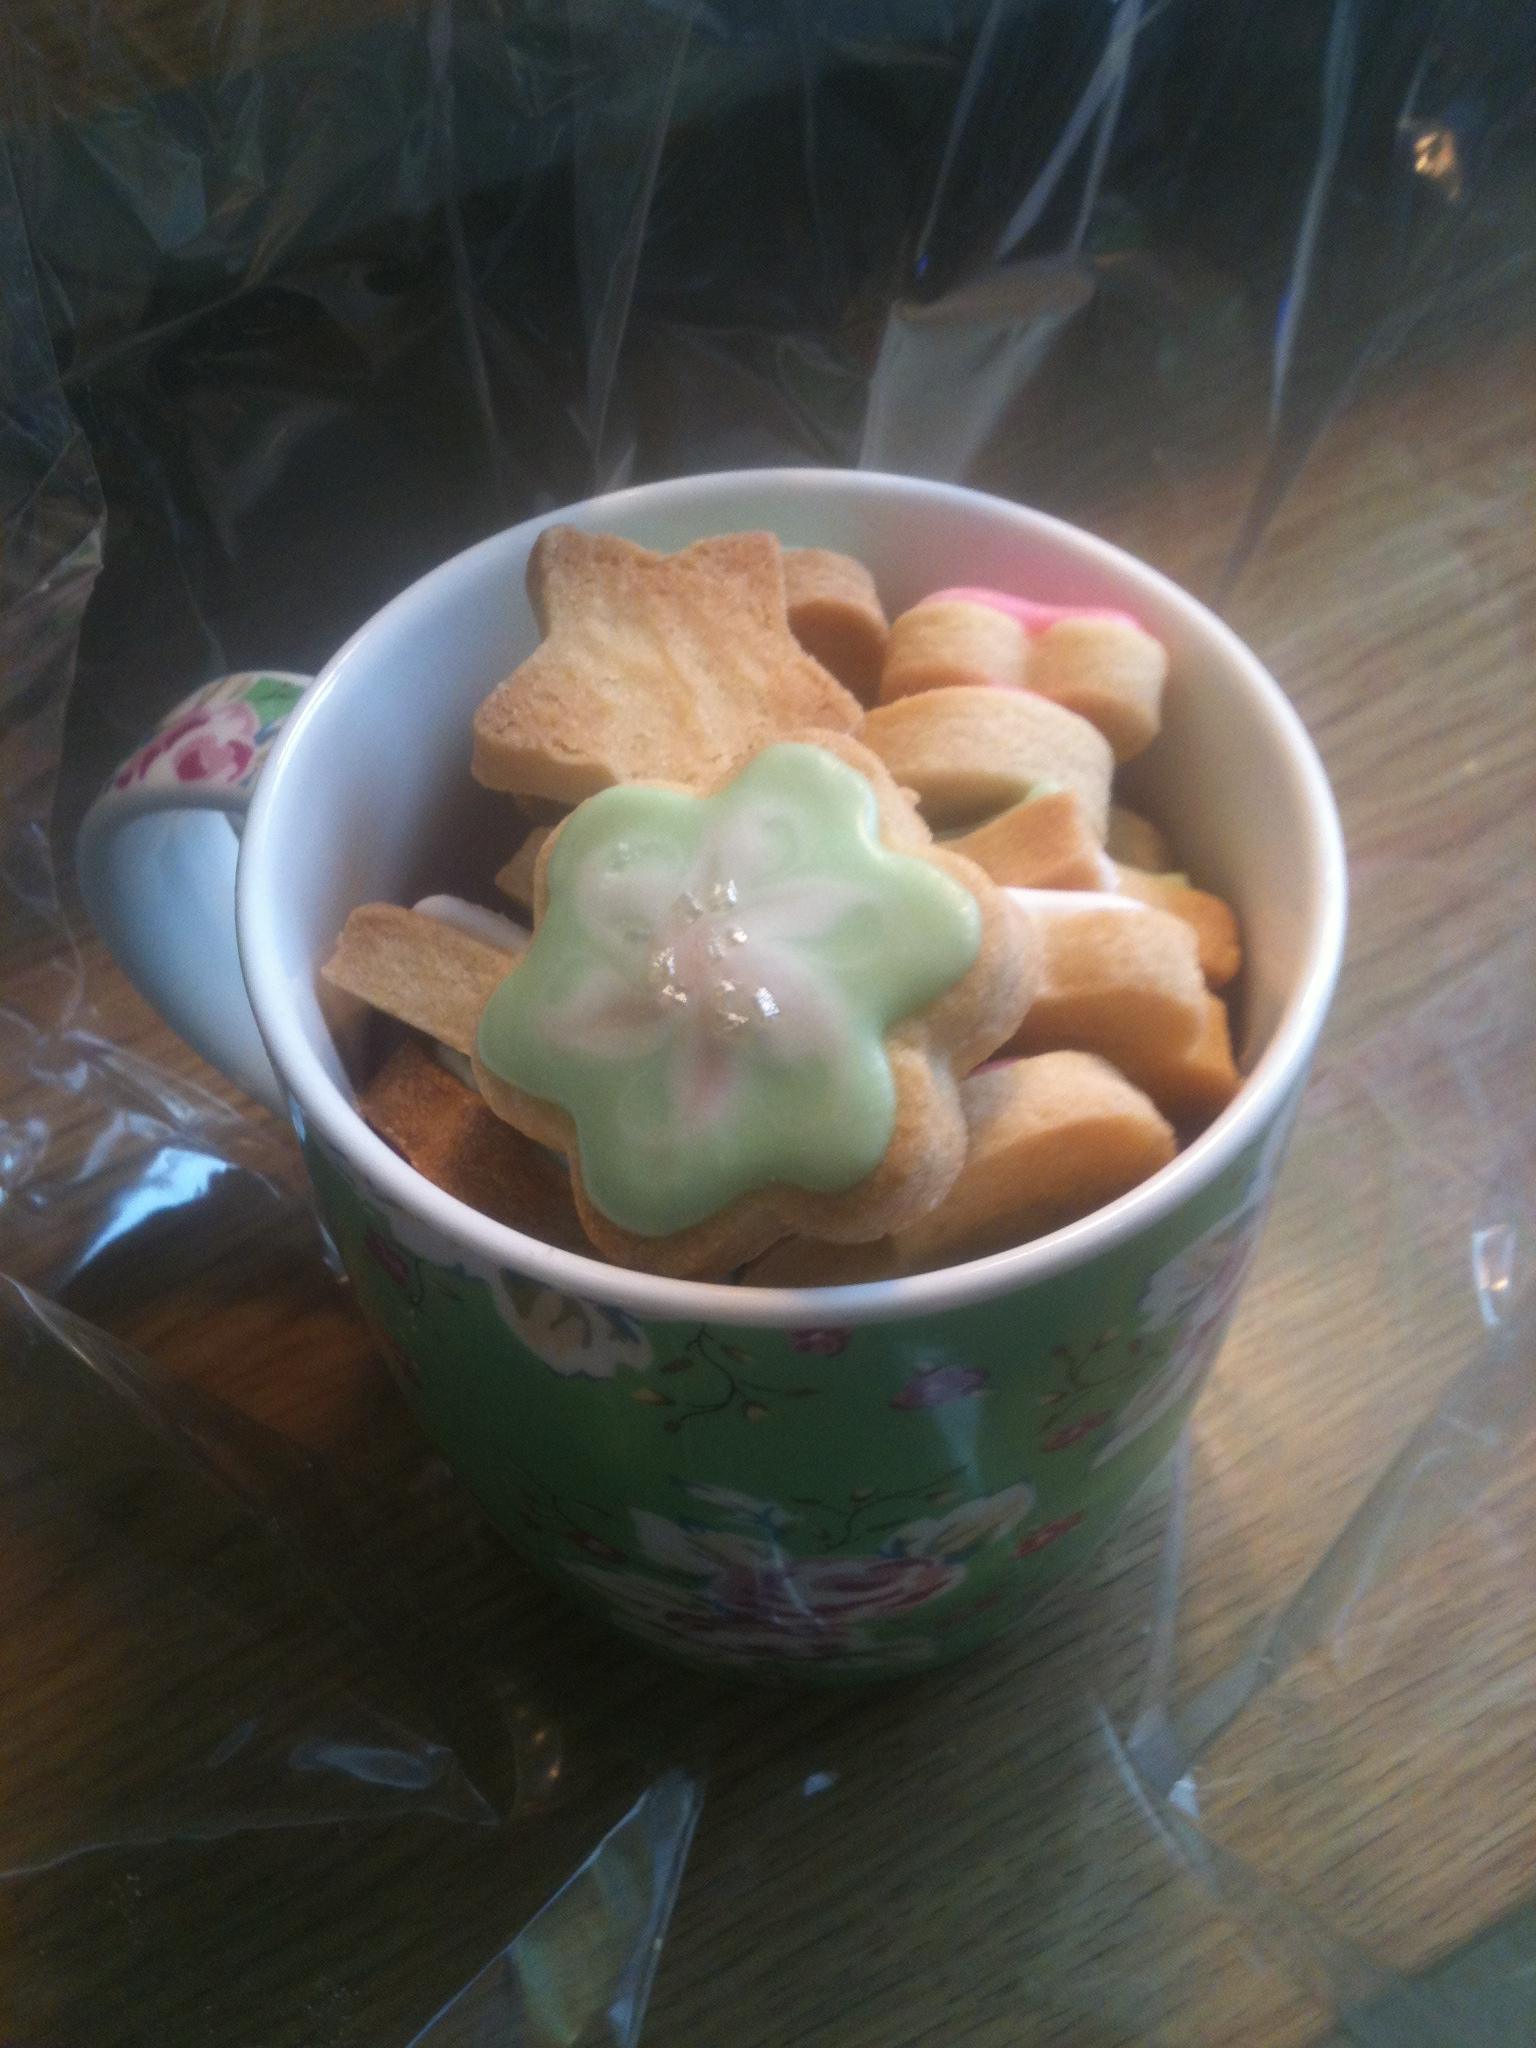 Handbaked and decorated biscuits in a gorgeous cup, all wrapped up and looking lovely